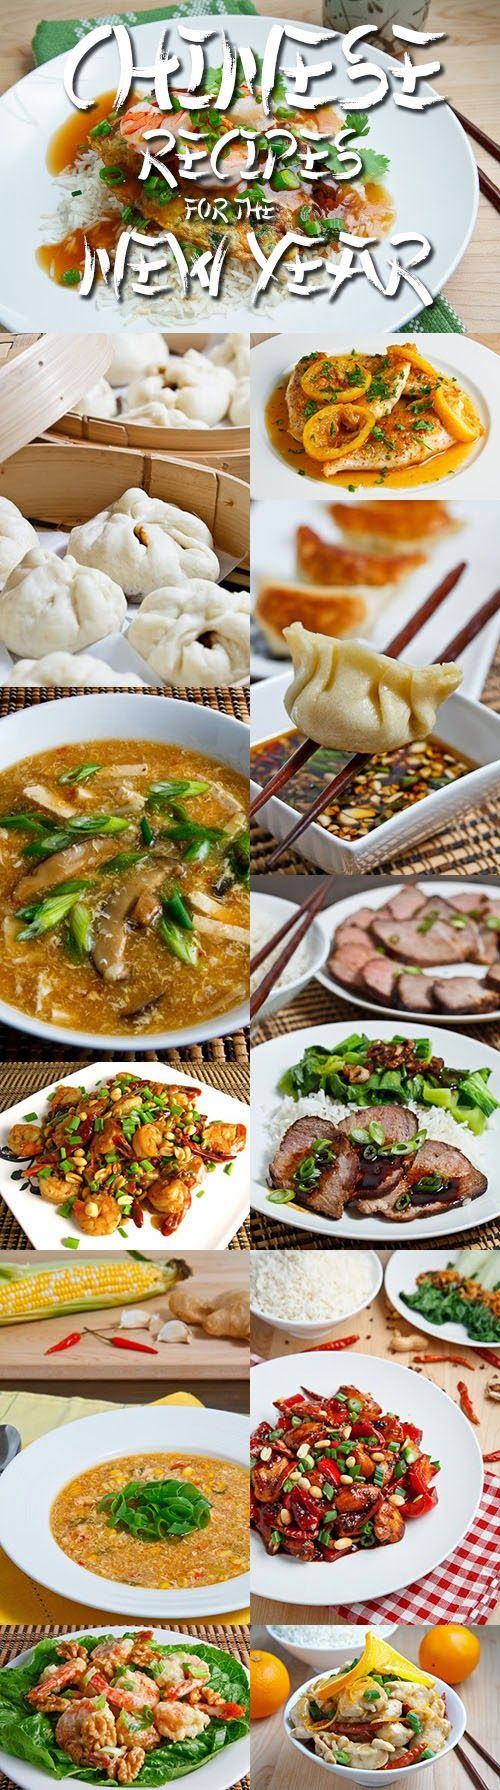 17 Chinese Recipes for the New Year